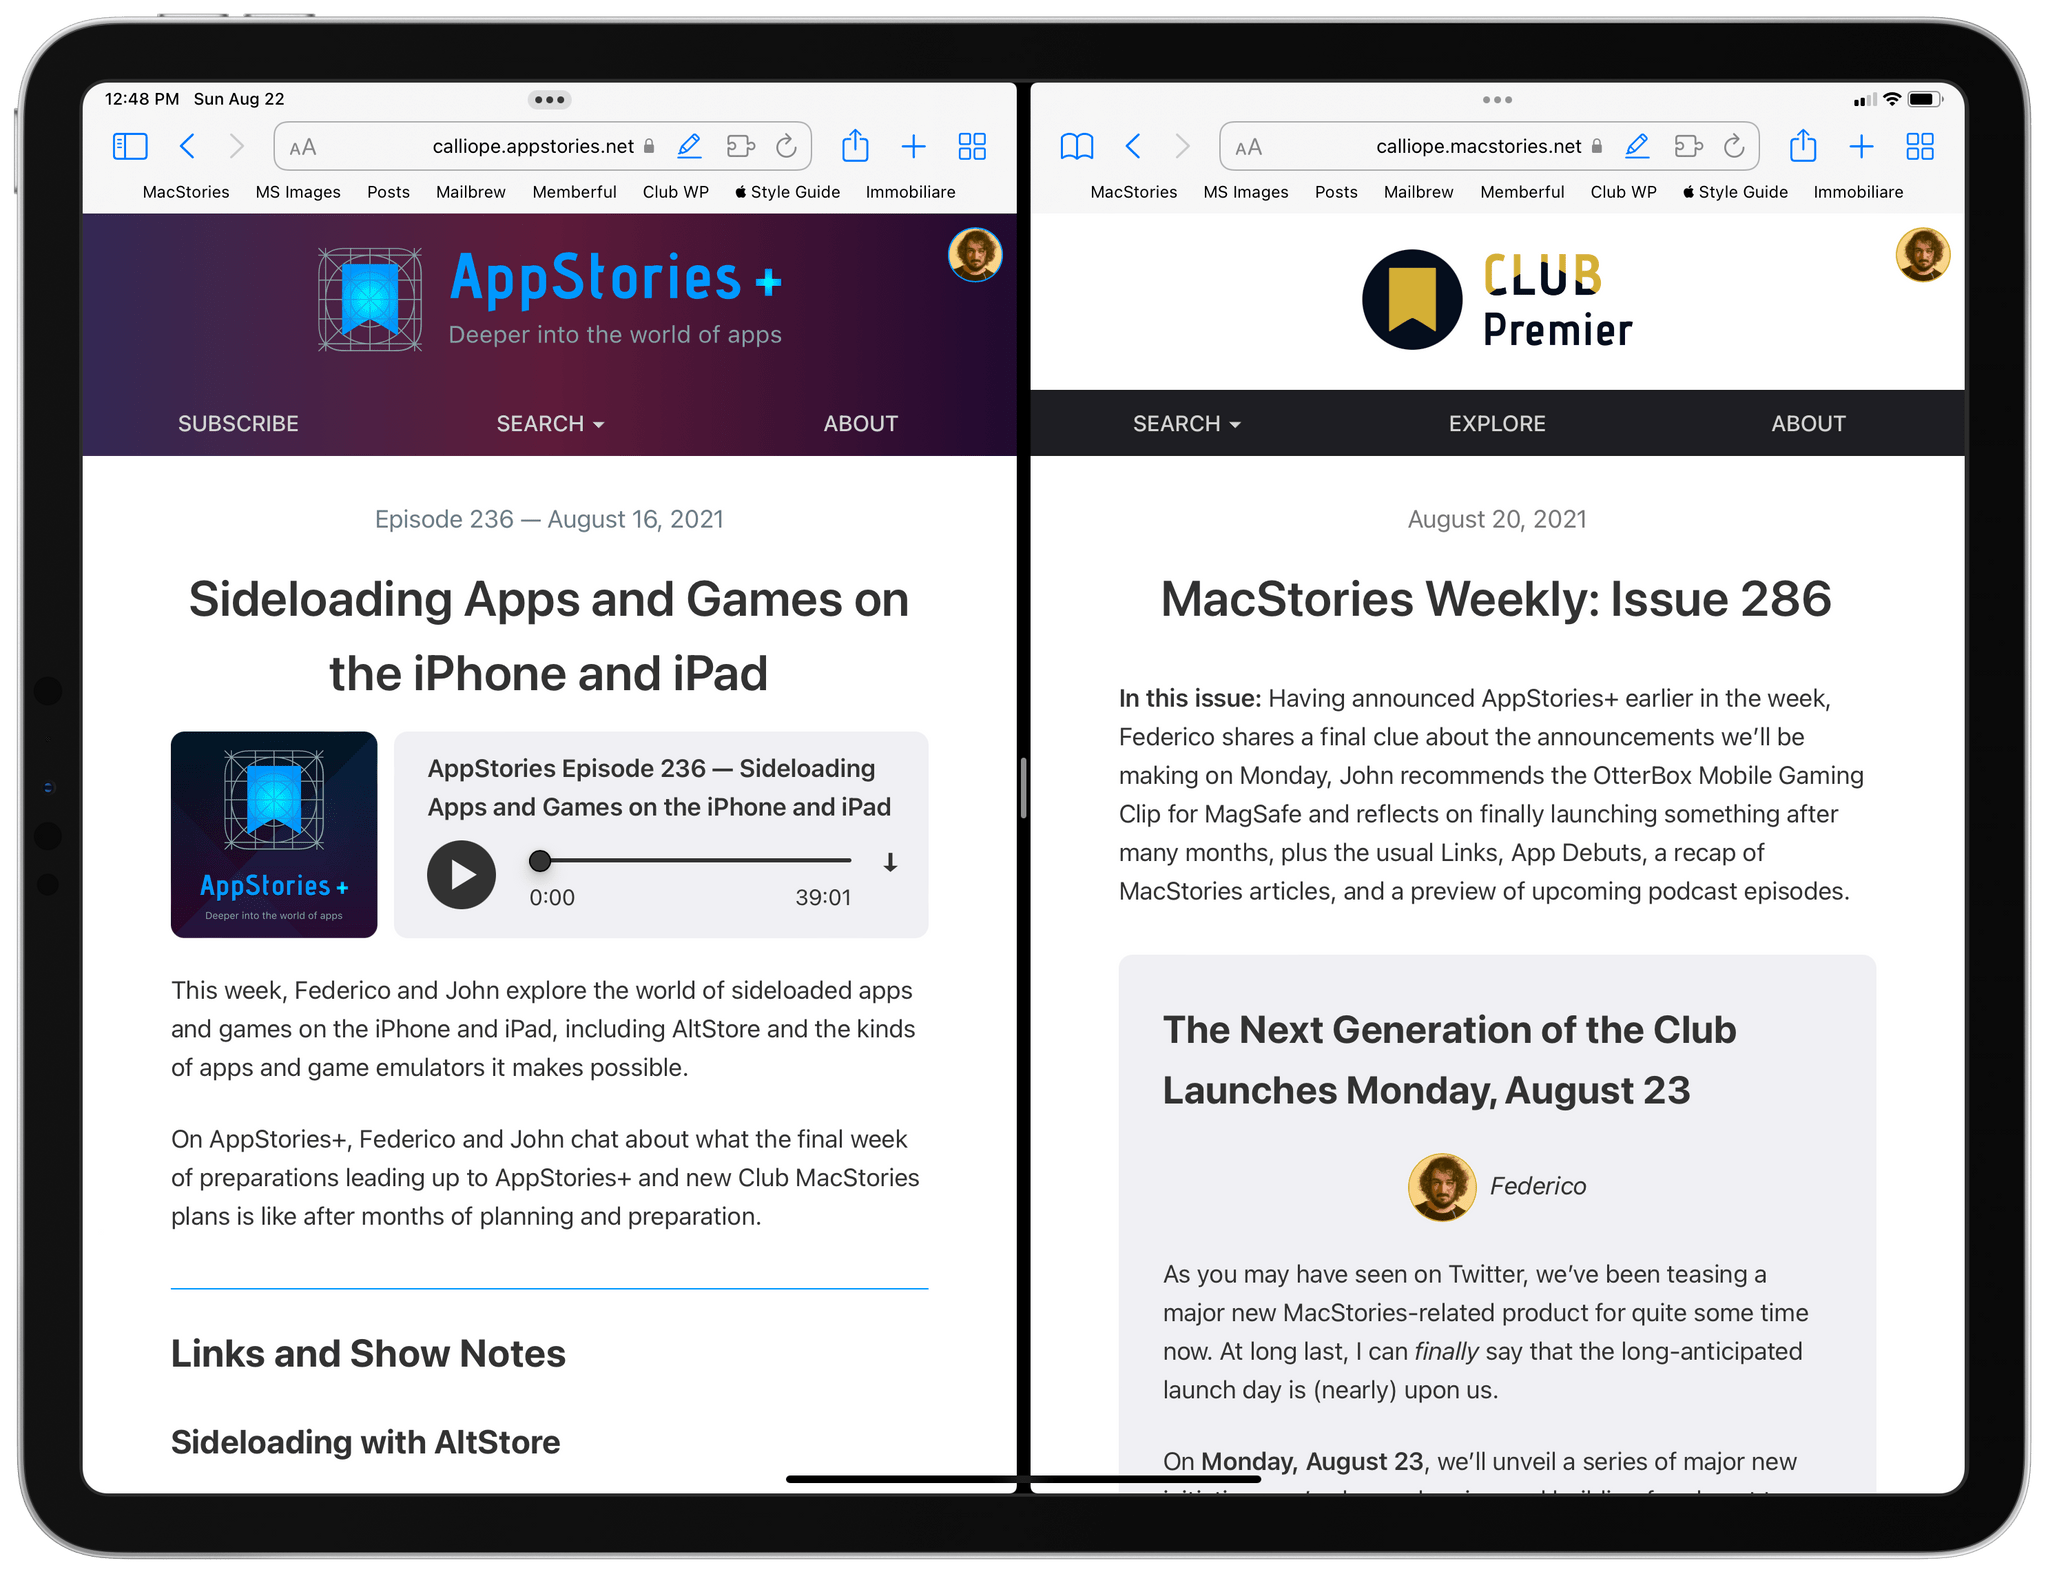 Calliope currently powers the Club MacStories and AppStories websites.